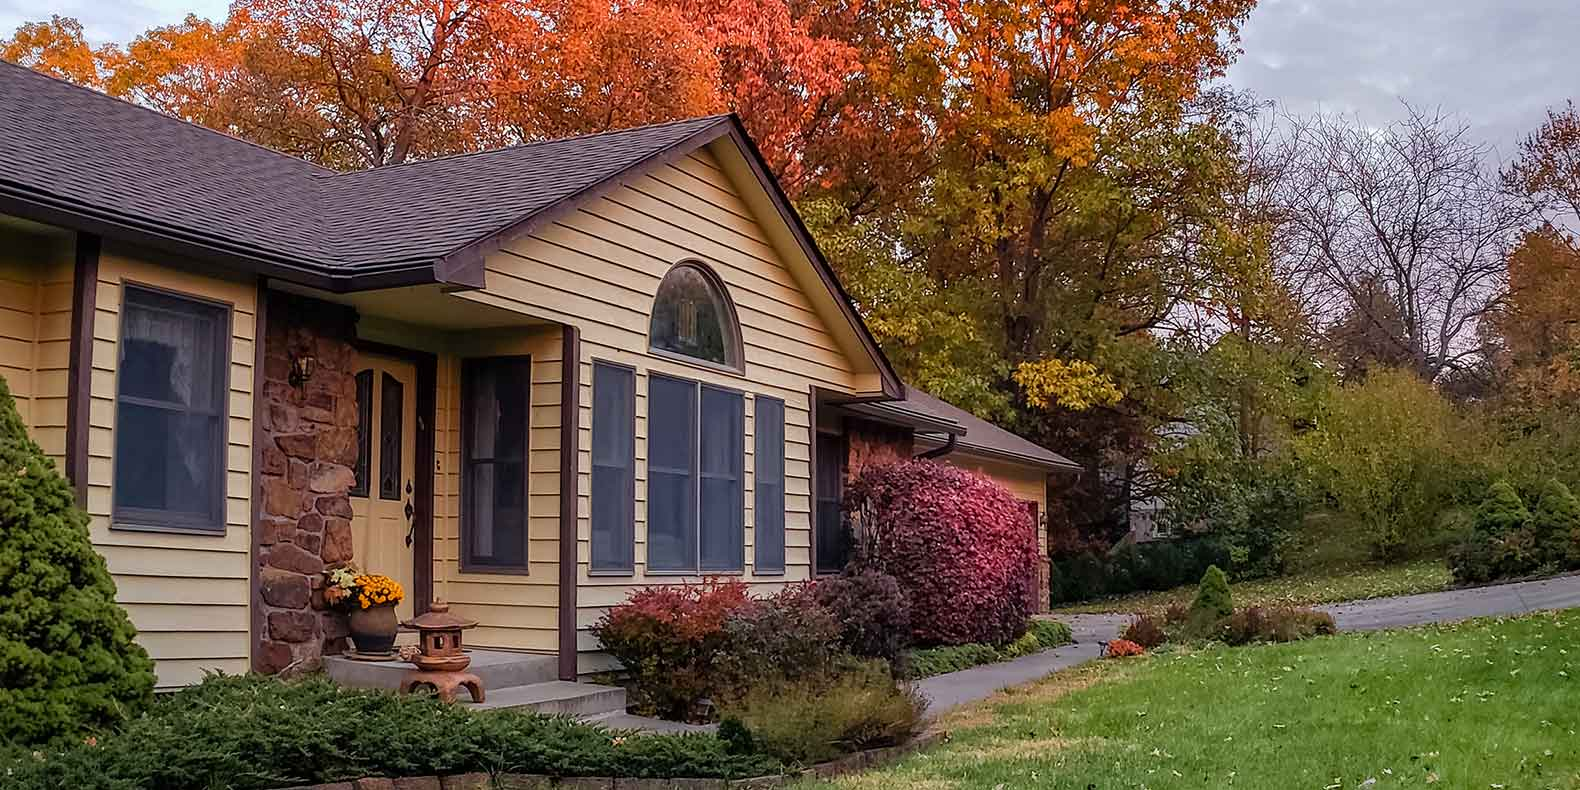 Maintain Home Security in Autumn